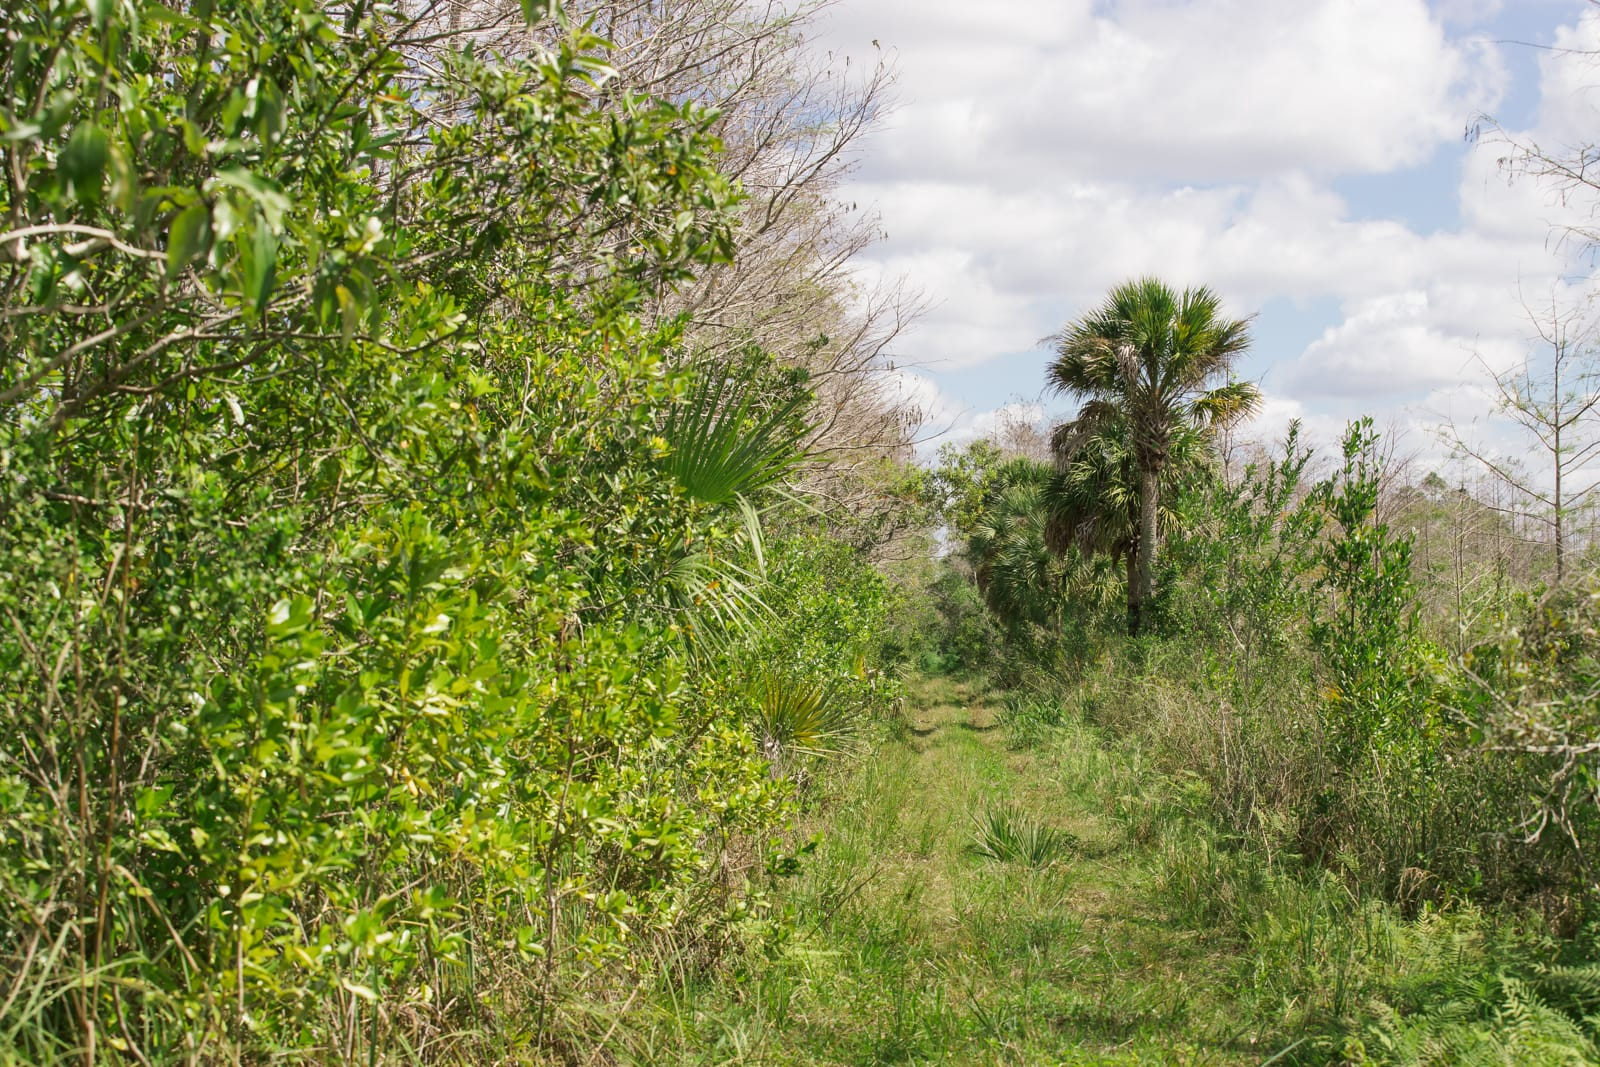 Everglades hiking trails